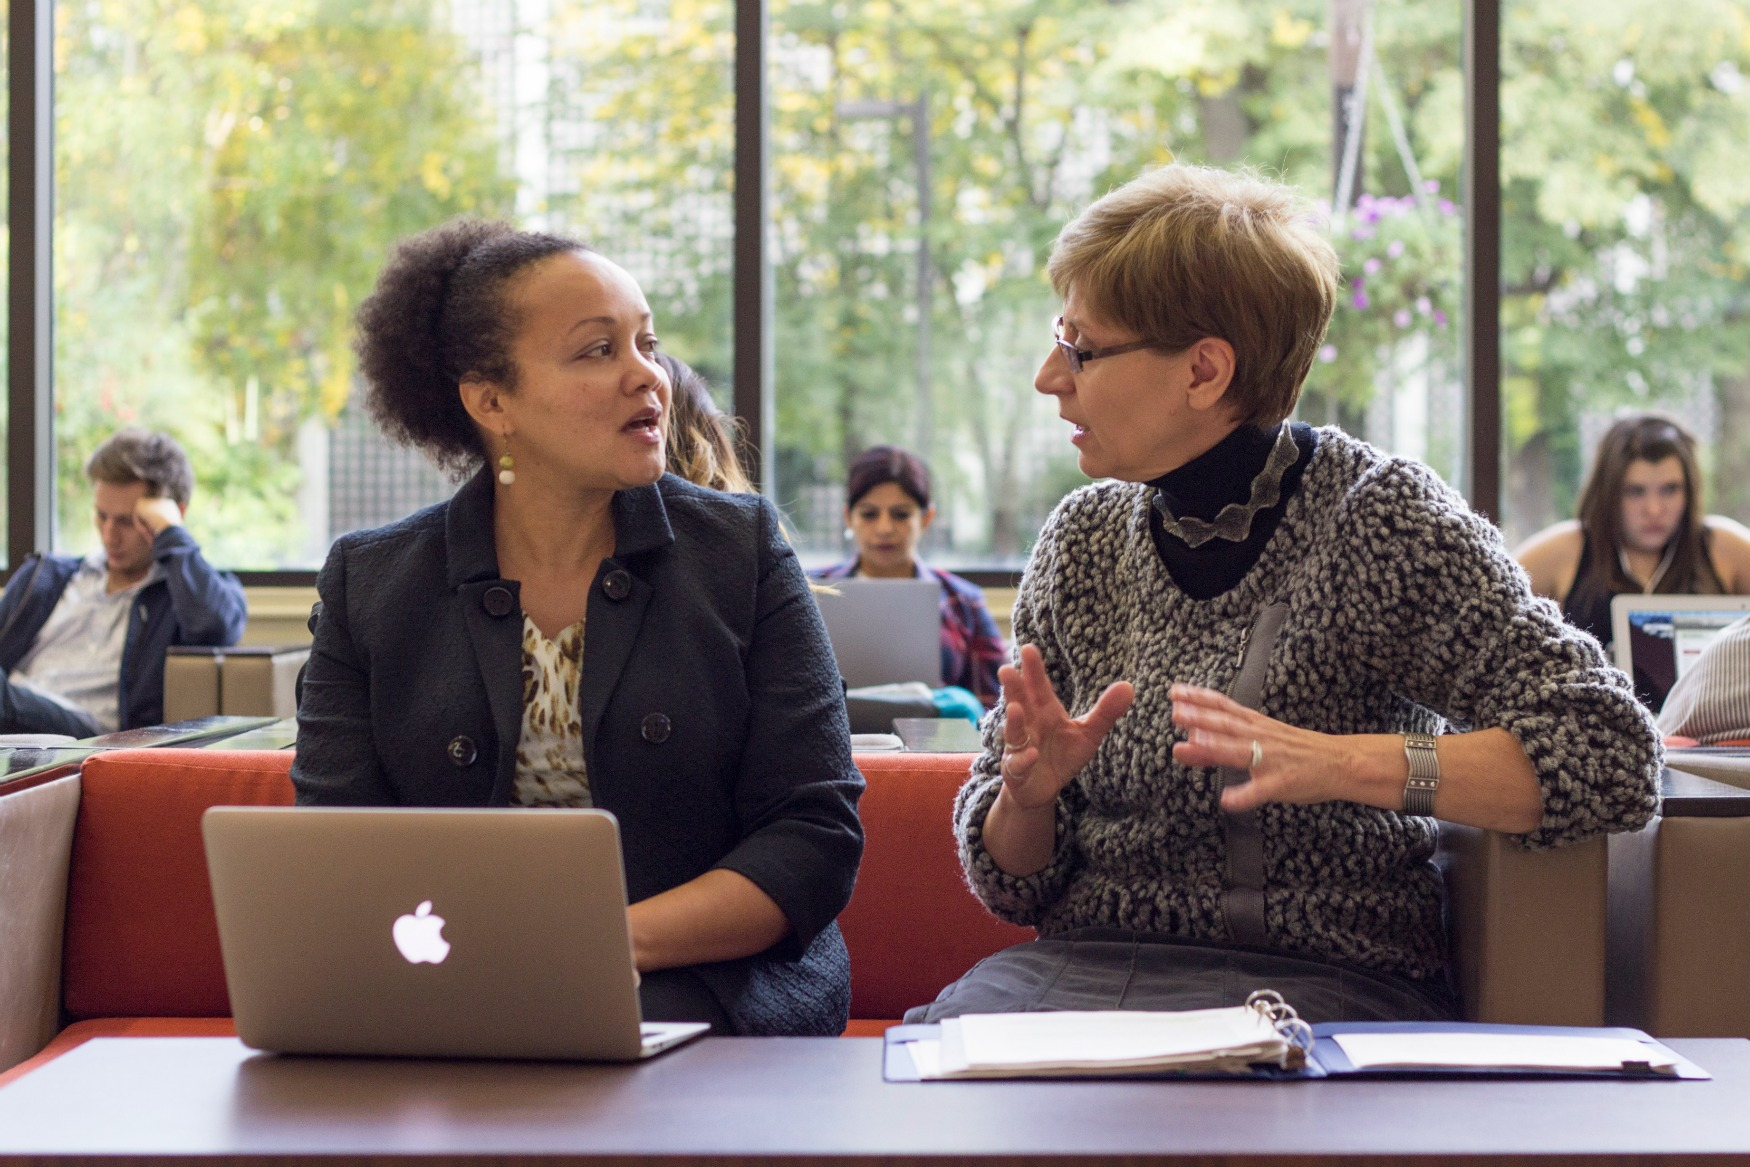 Faculty launches web series focused on needs of refugee students